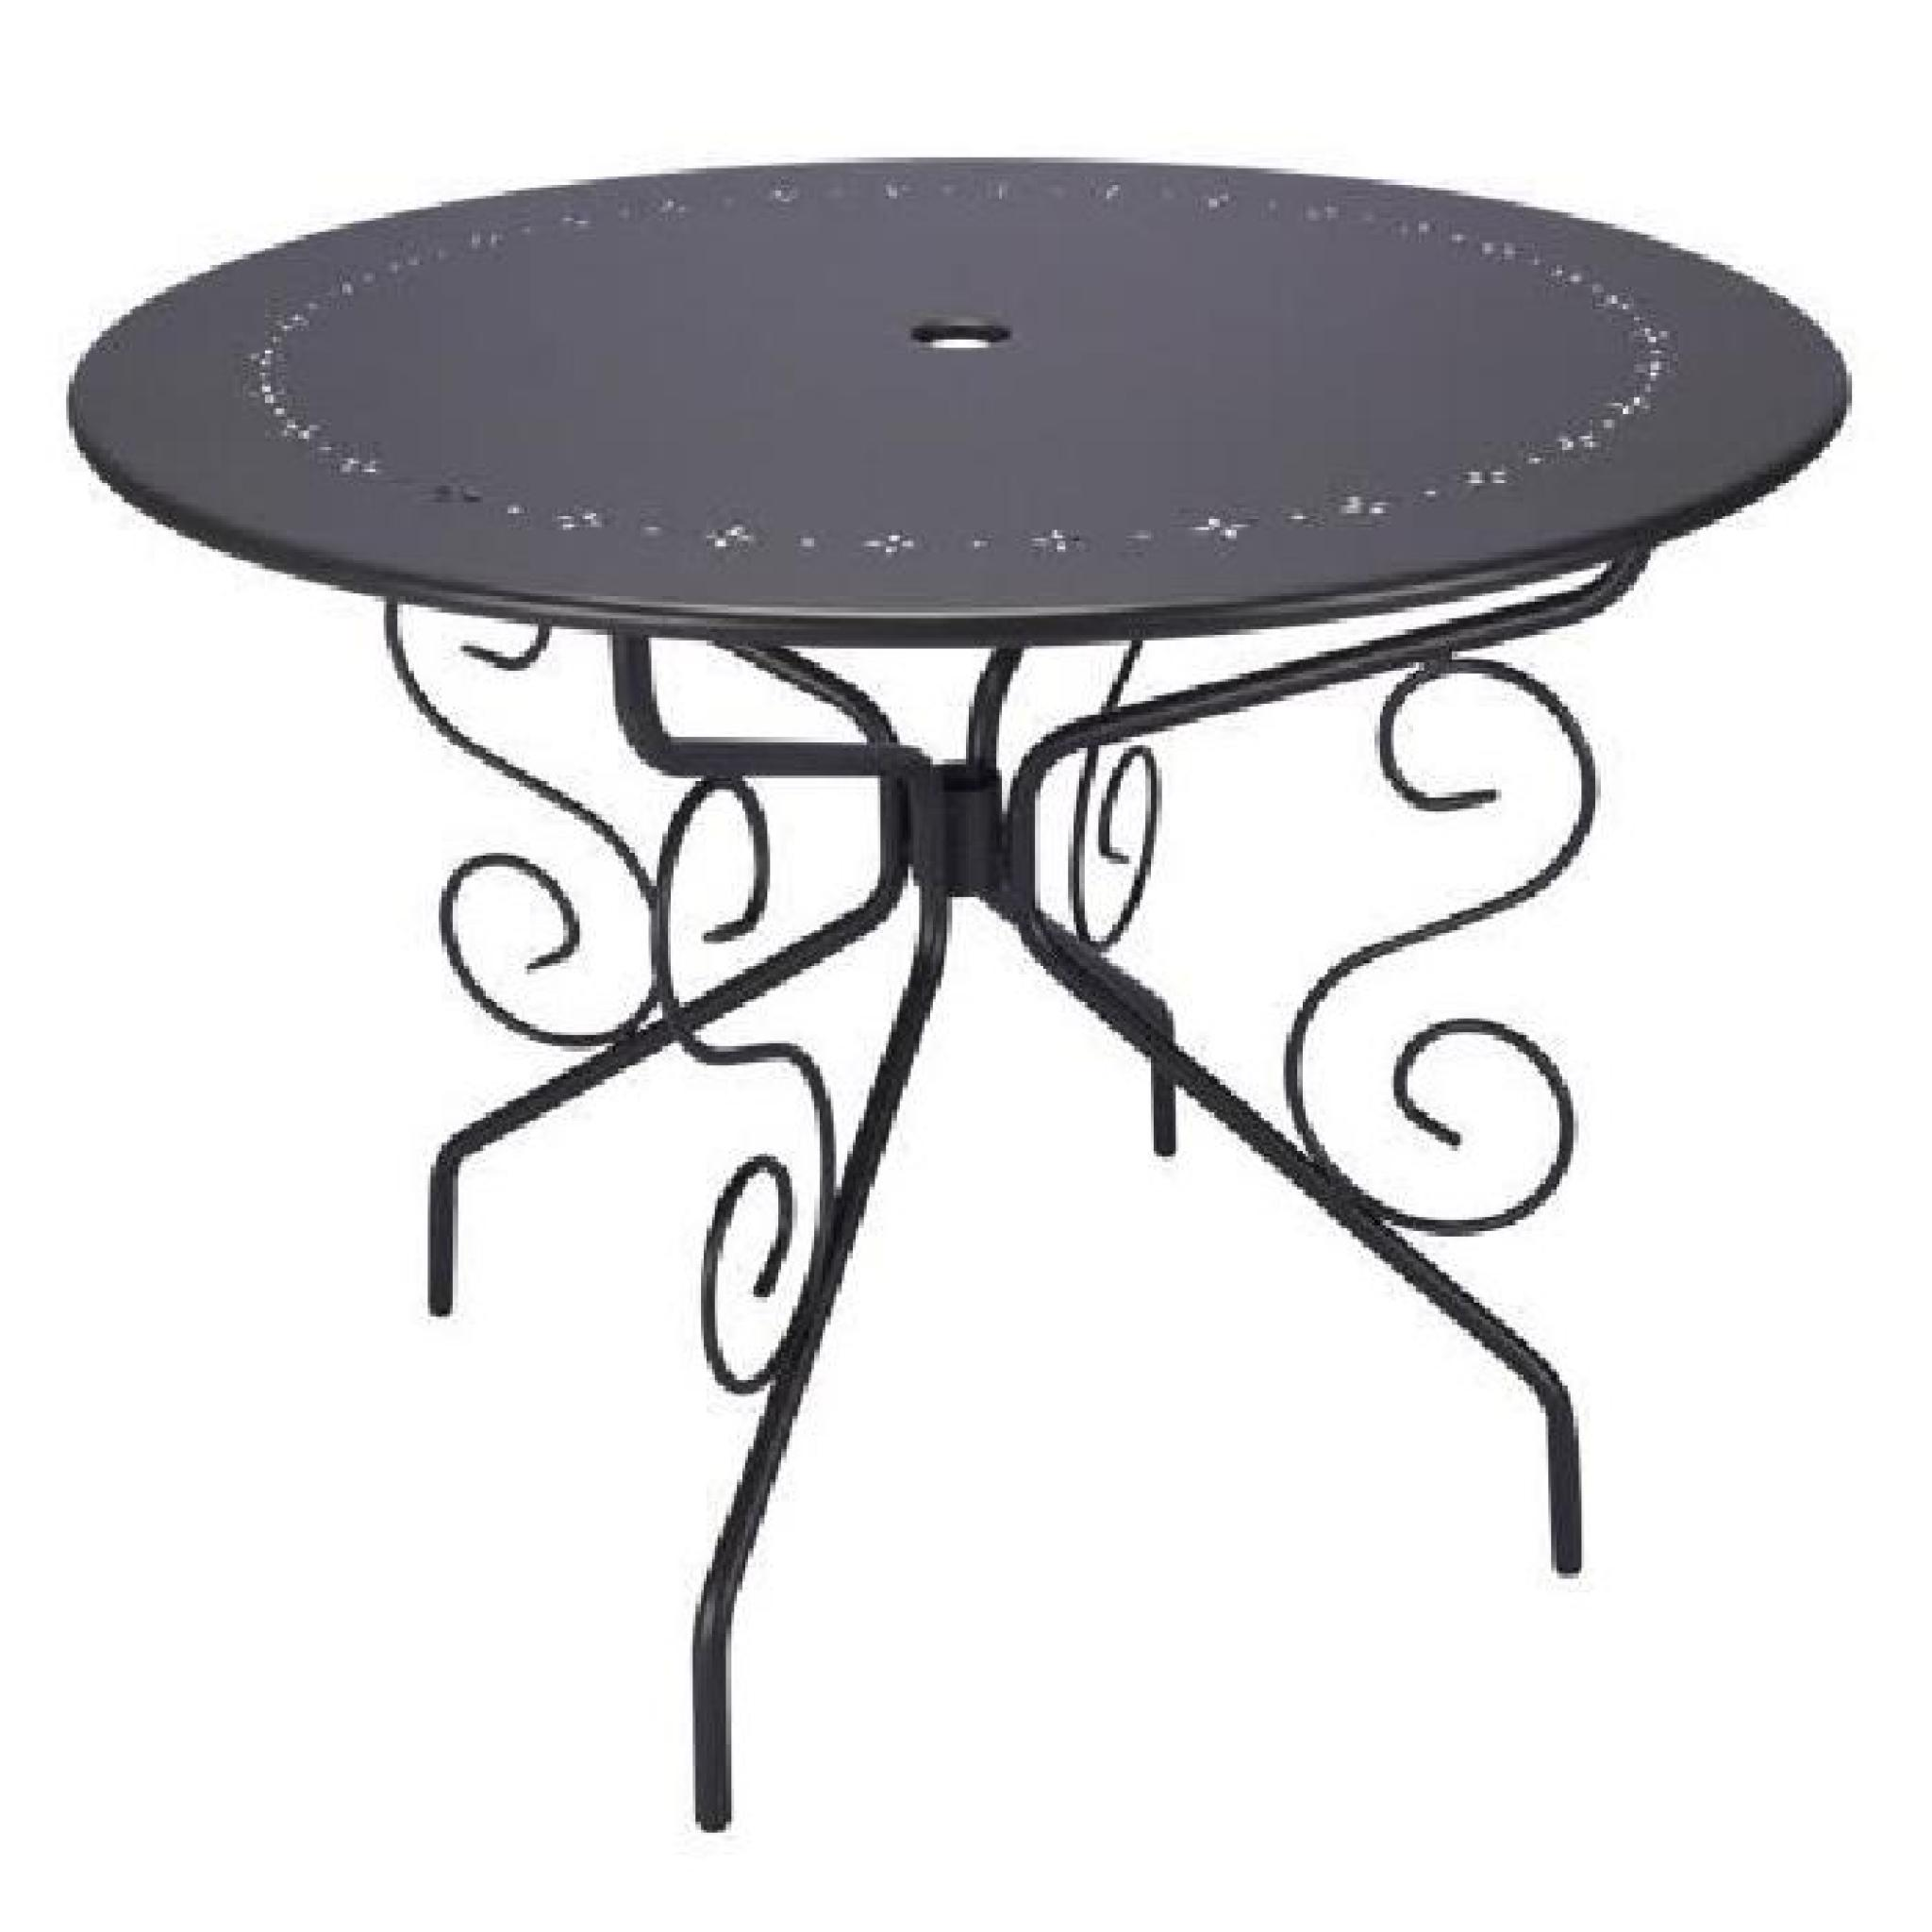 TABLE DE JARDIN RONDE D95CM ROMANTIQUE GRIS ANTHRACITE 4 PLACES ...